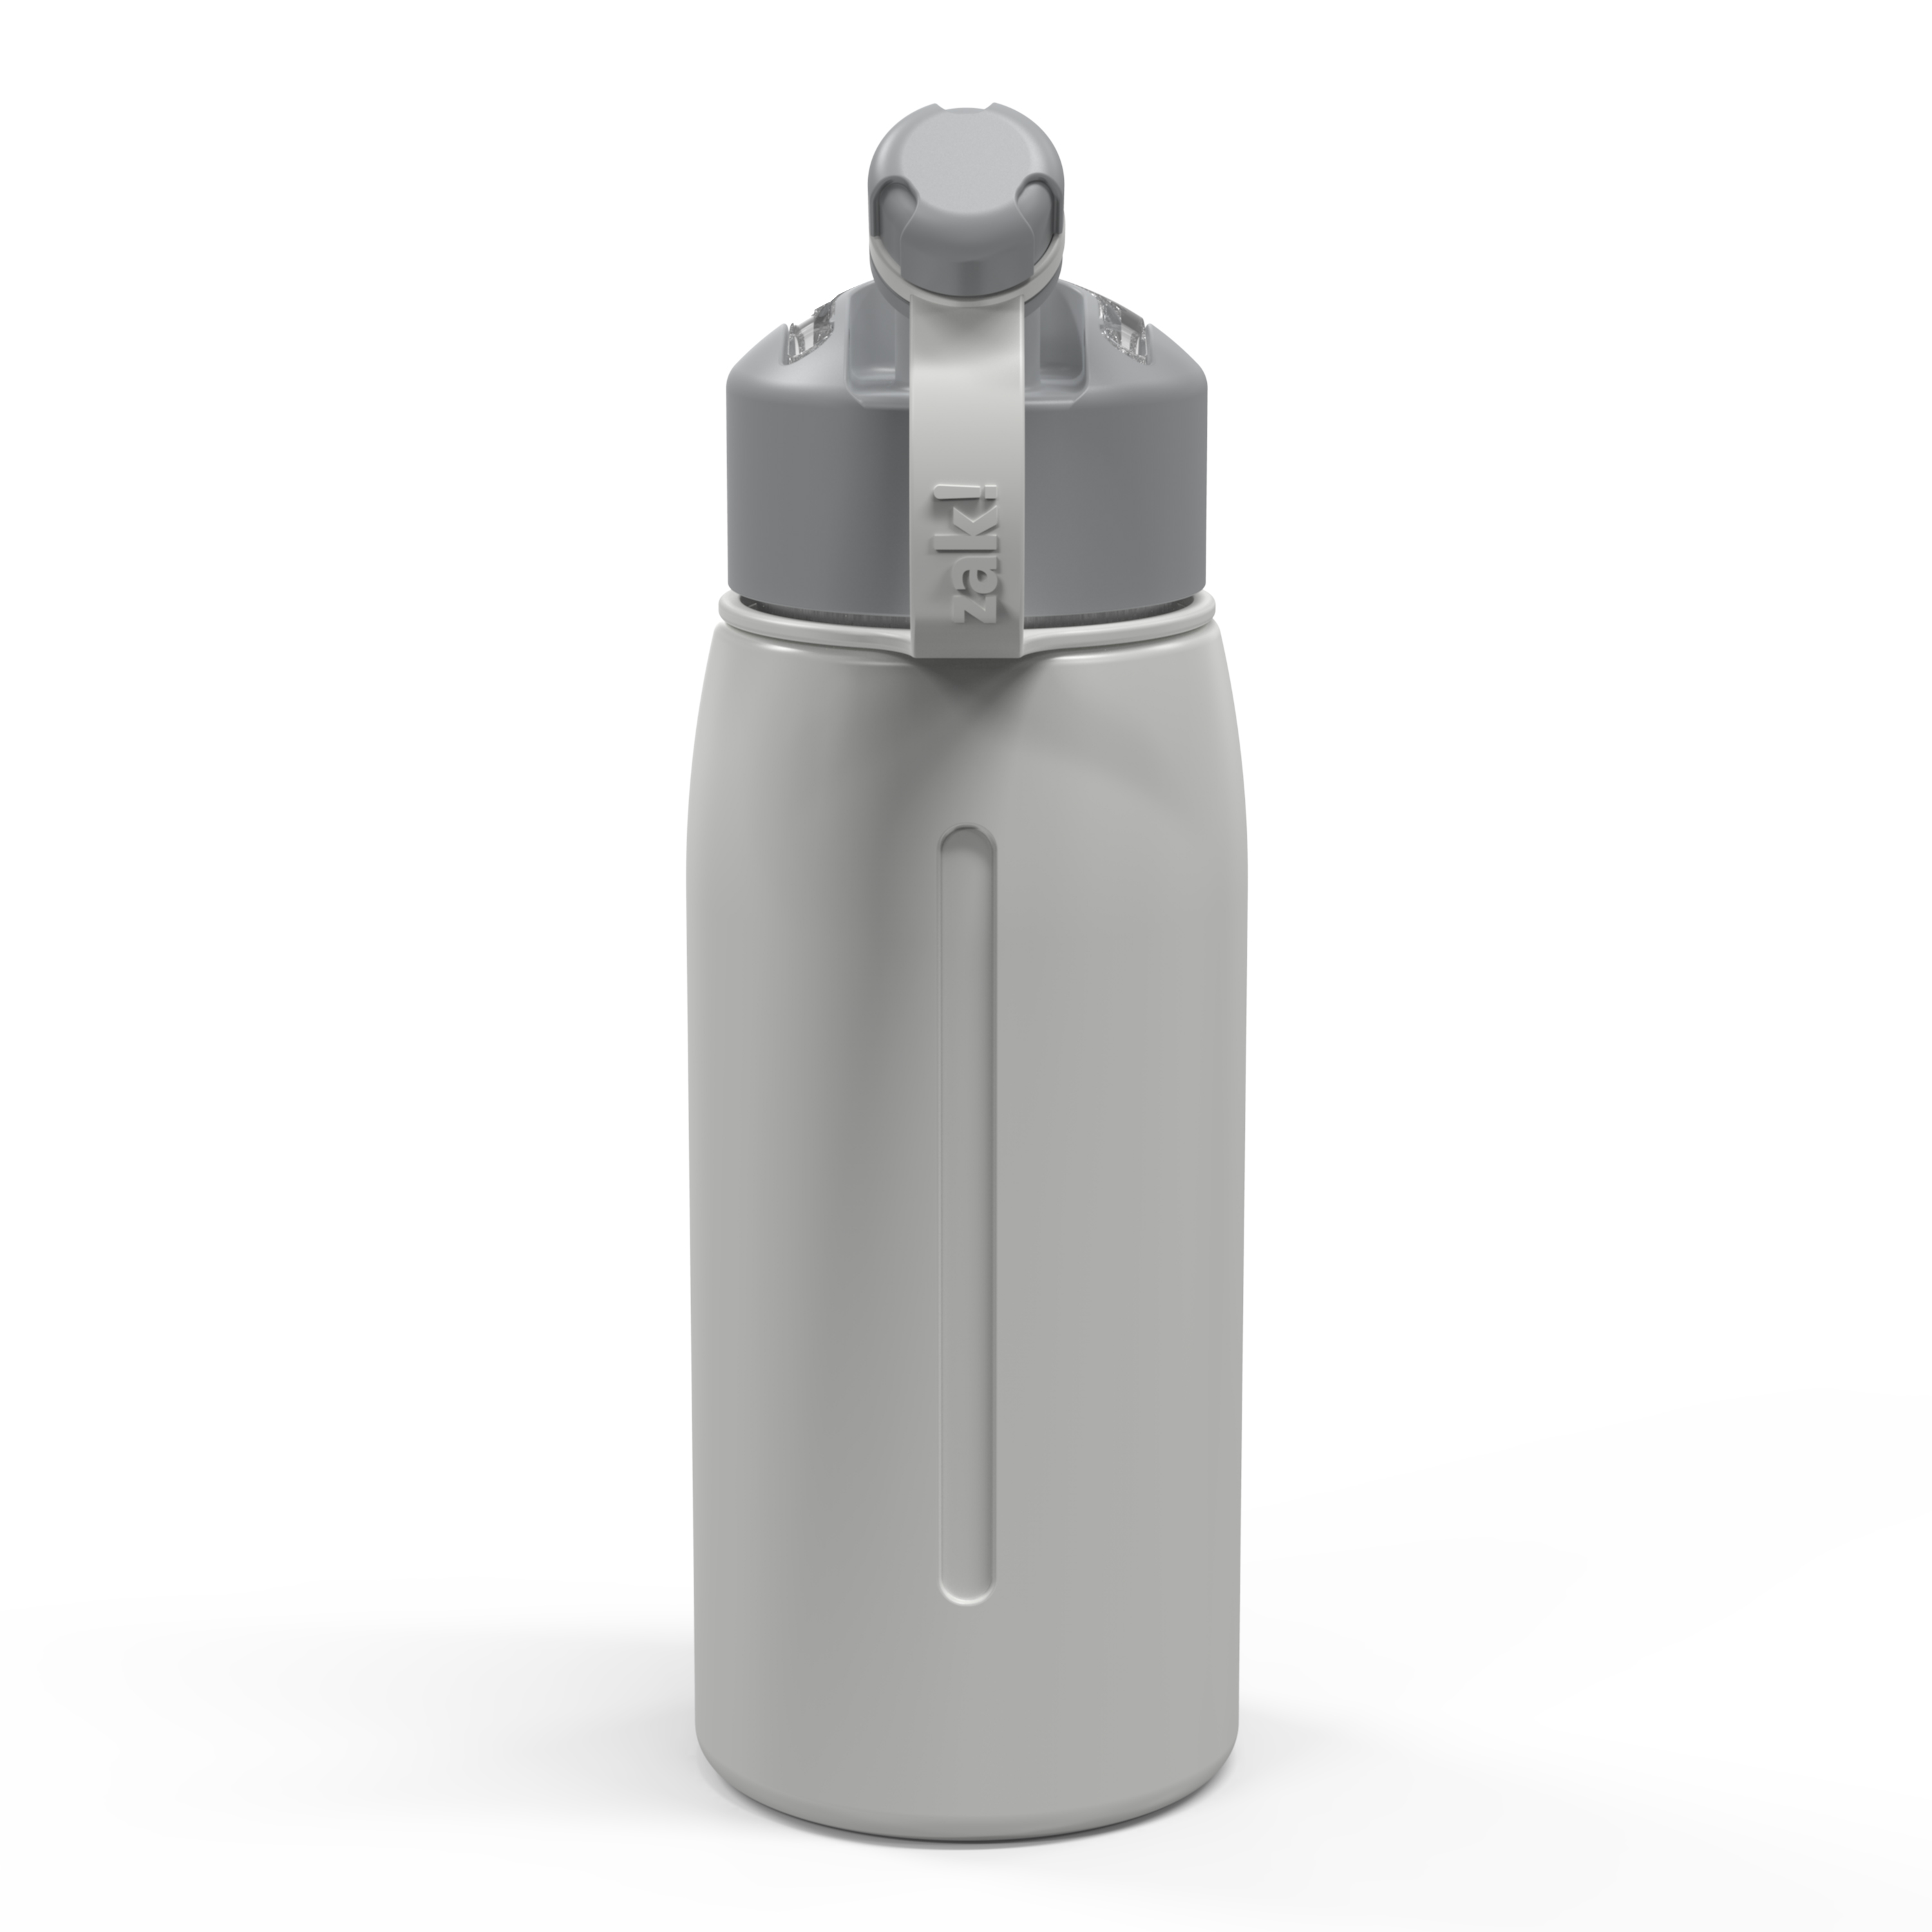 Genesis 24 ounce Vacuum Insulated Stainless Steel Tumbler, Gray slideshow image 7